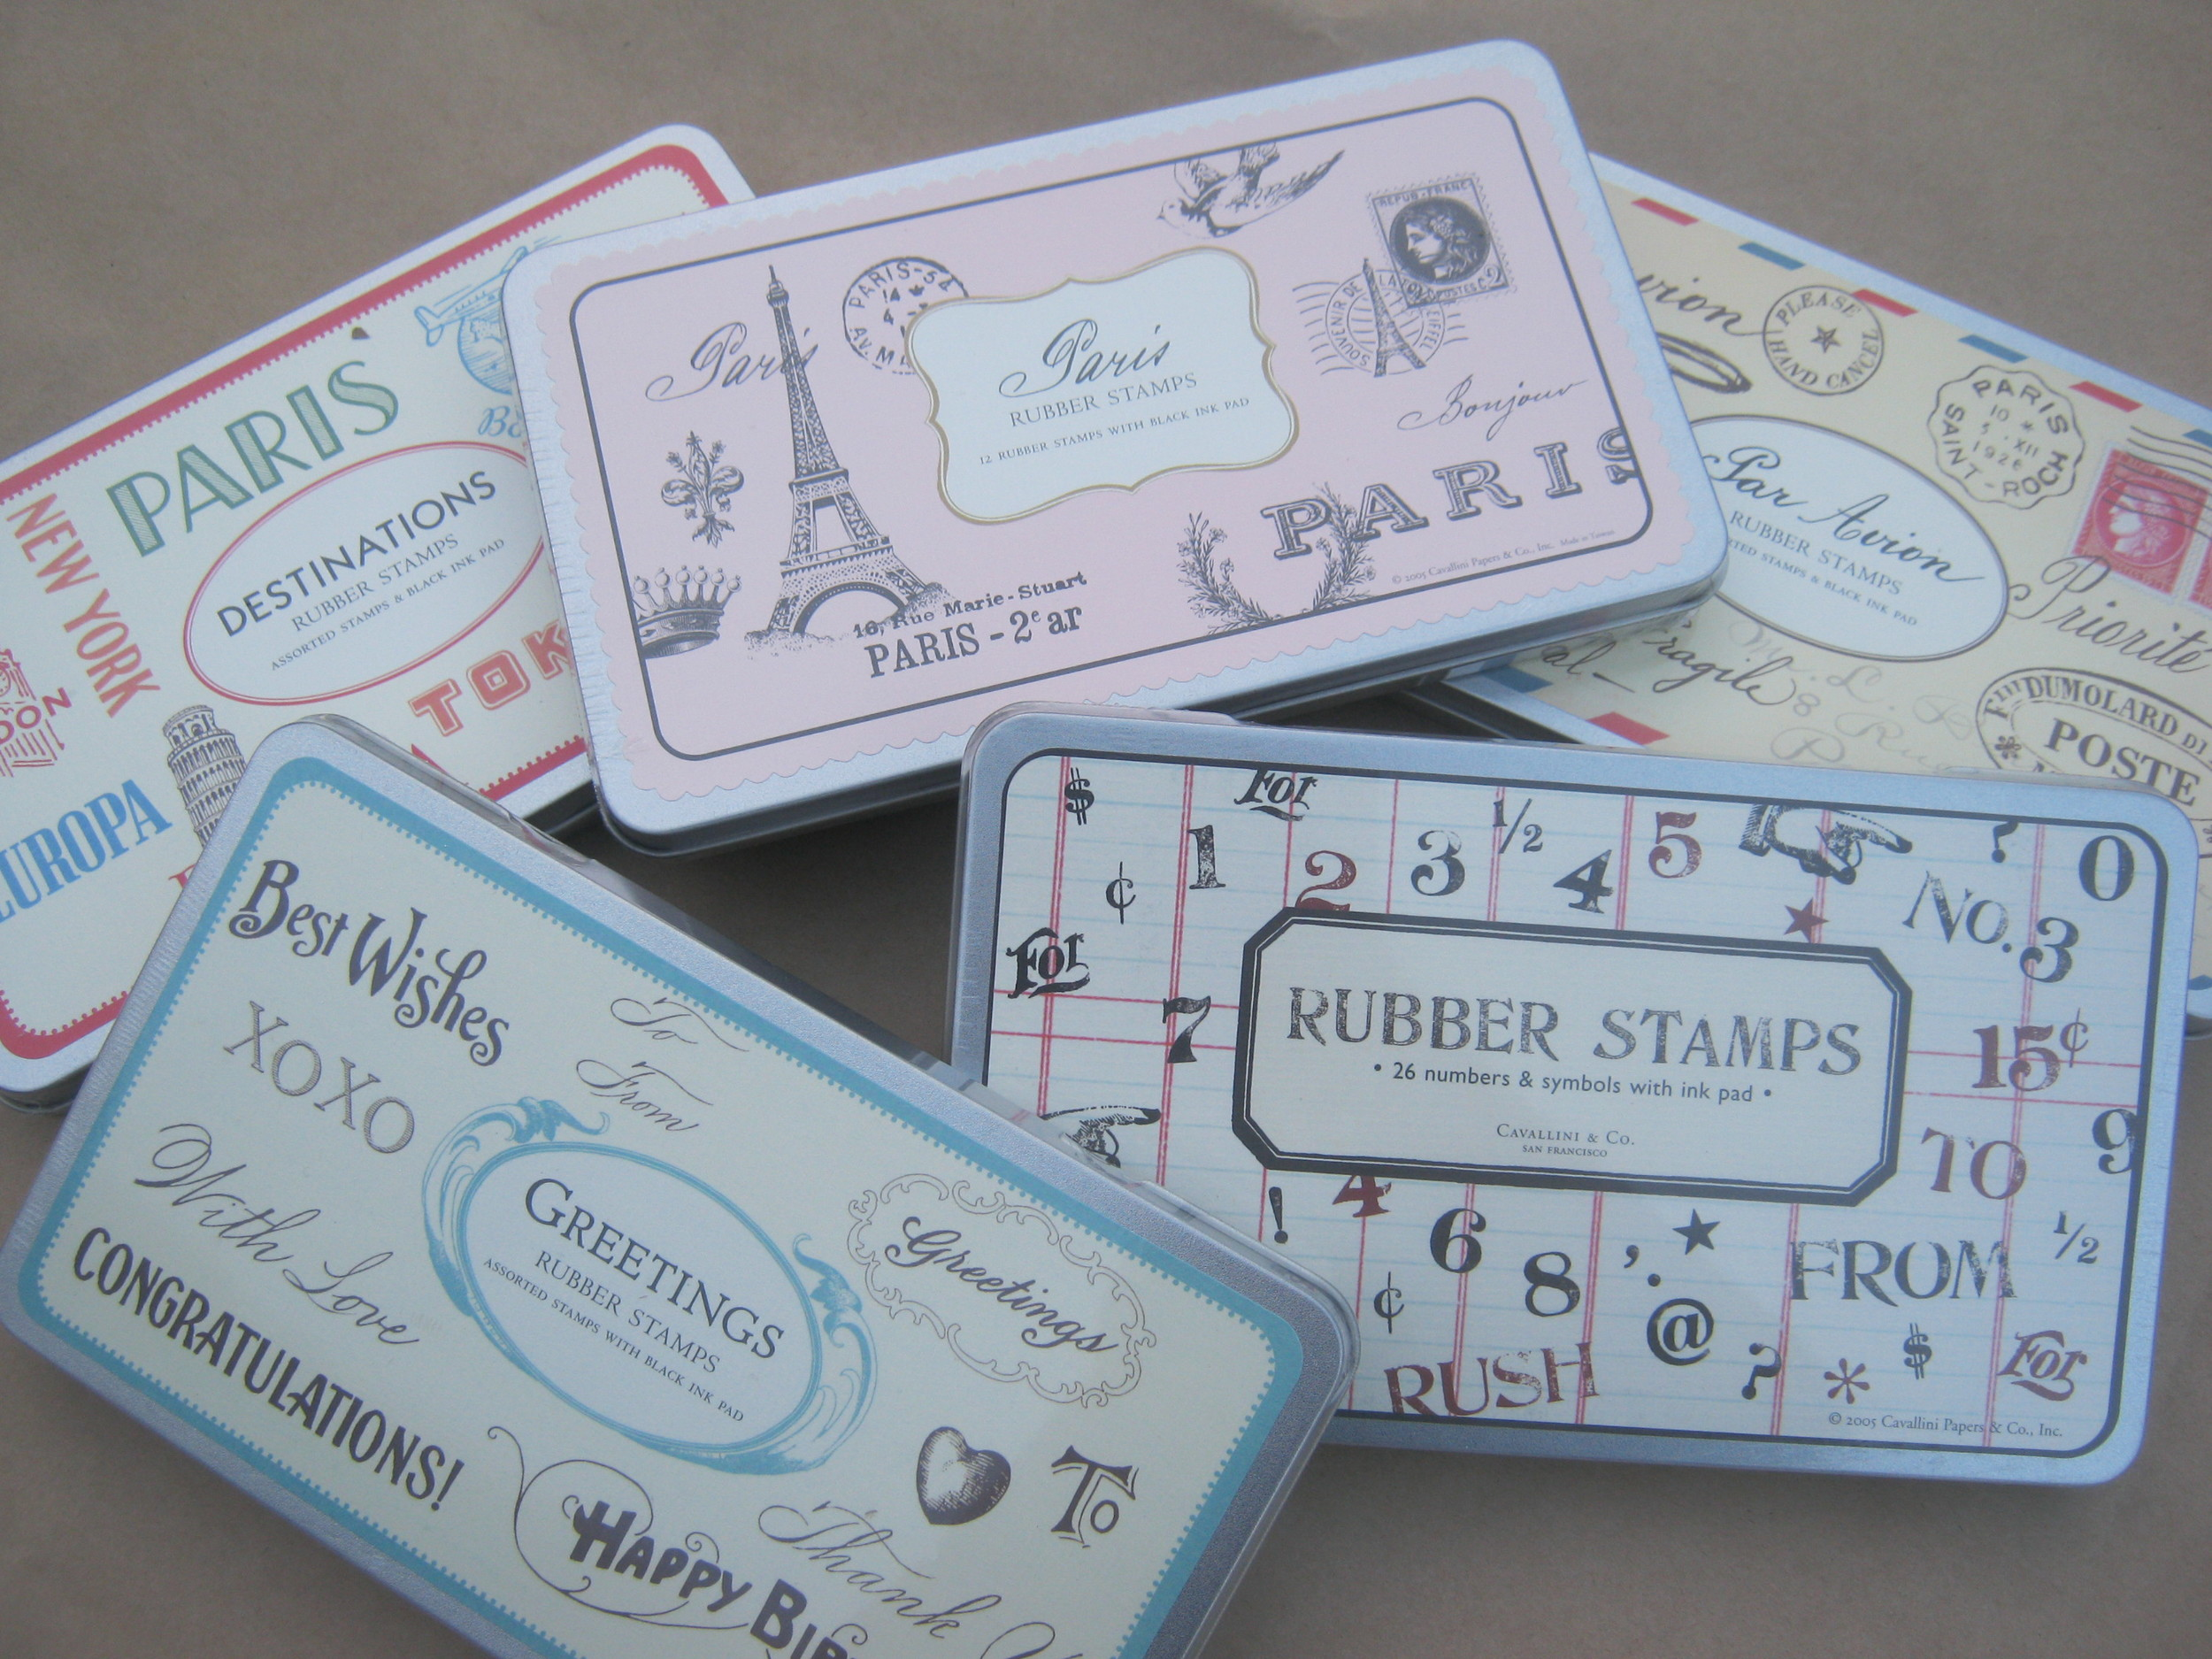 more stamp sets... Paris  Destinations  Par Avion  Numbers and Symbols  Greetings